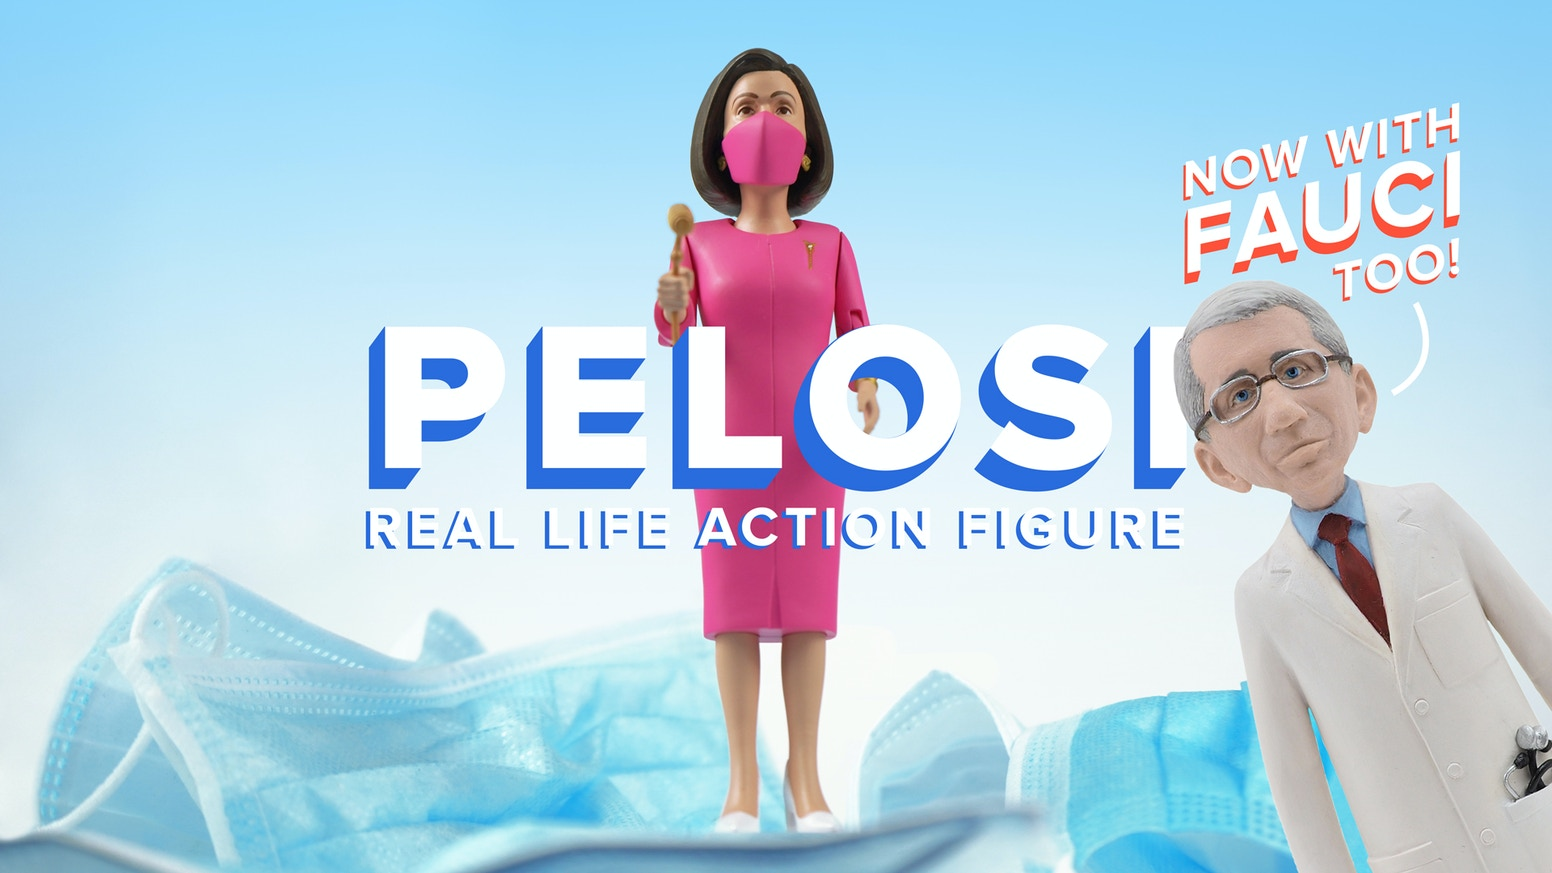 We're turning Nancy Pelosi  and Dr. Fauci into action figures